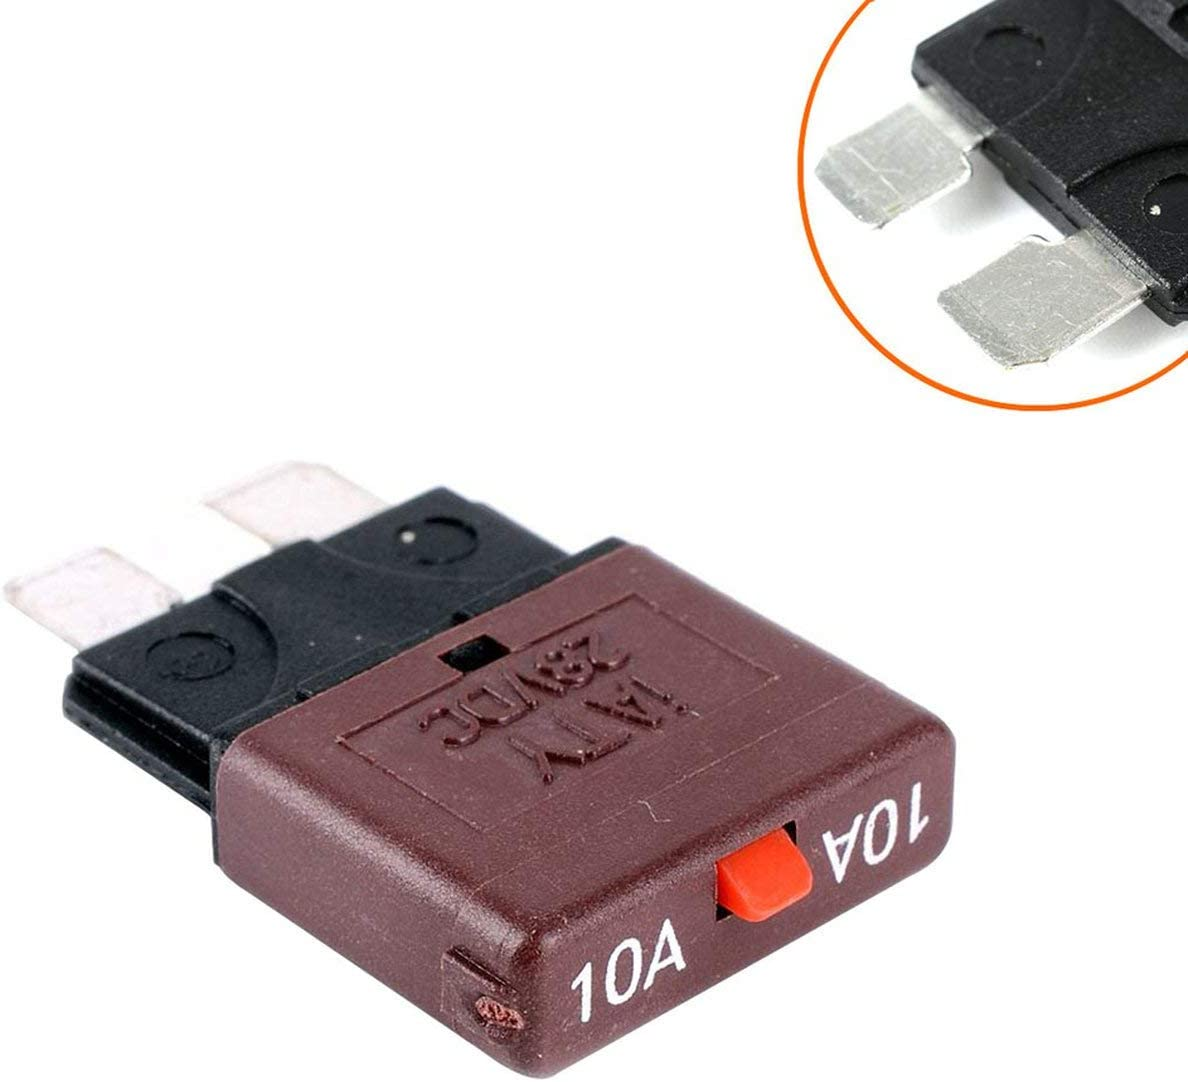 BIYI 10A Fuse 12v//24v Fits Circuit Breaker Blade Automotive Car Kit Resettable Inline Fuse Holder Protection Stereo Manual Reset Dark Brown